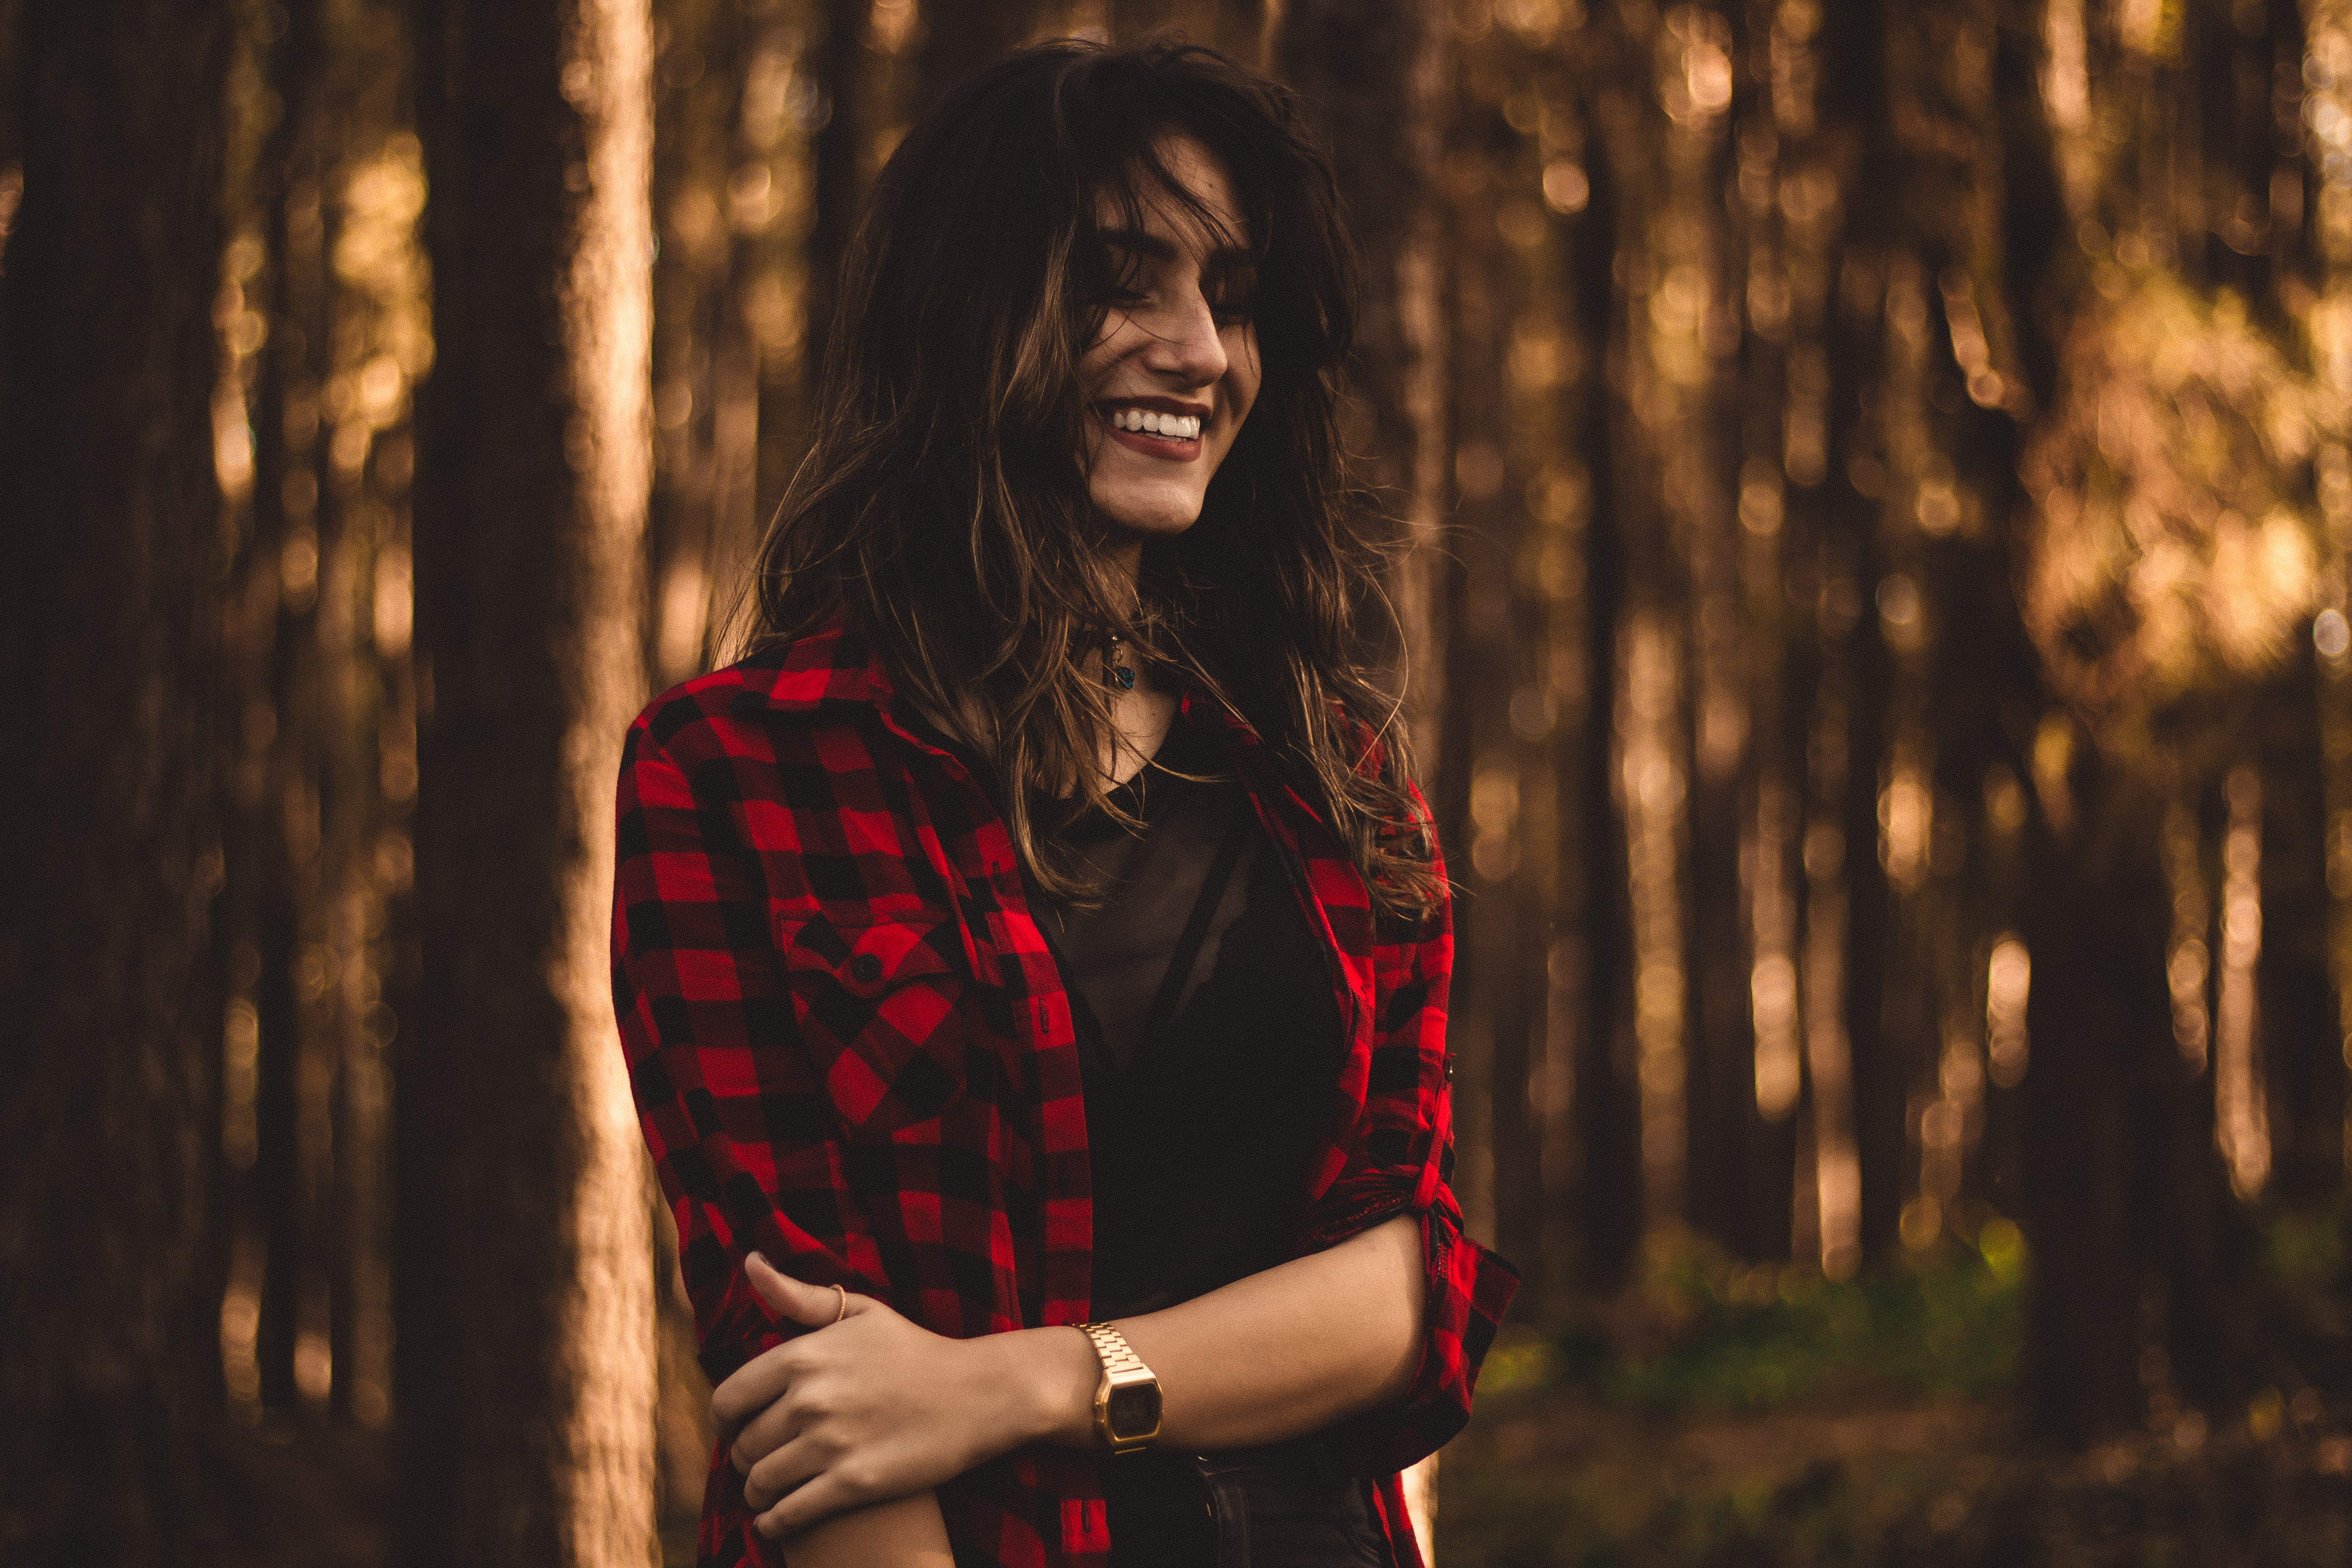 shallow focus photography of woman in red checkered button-up top